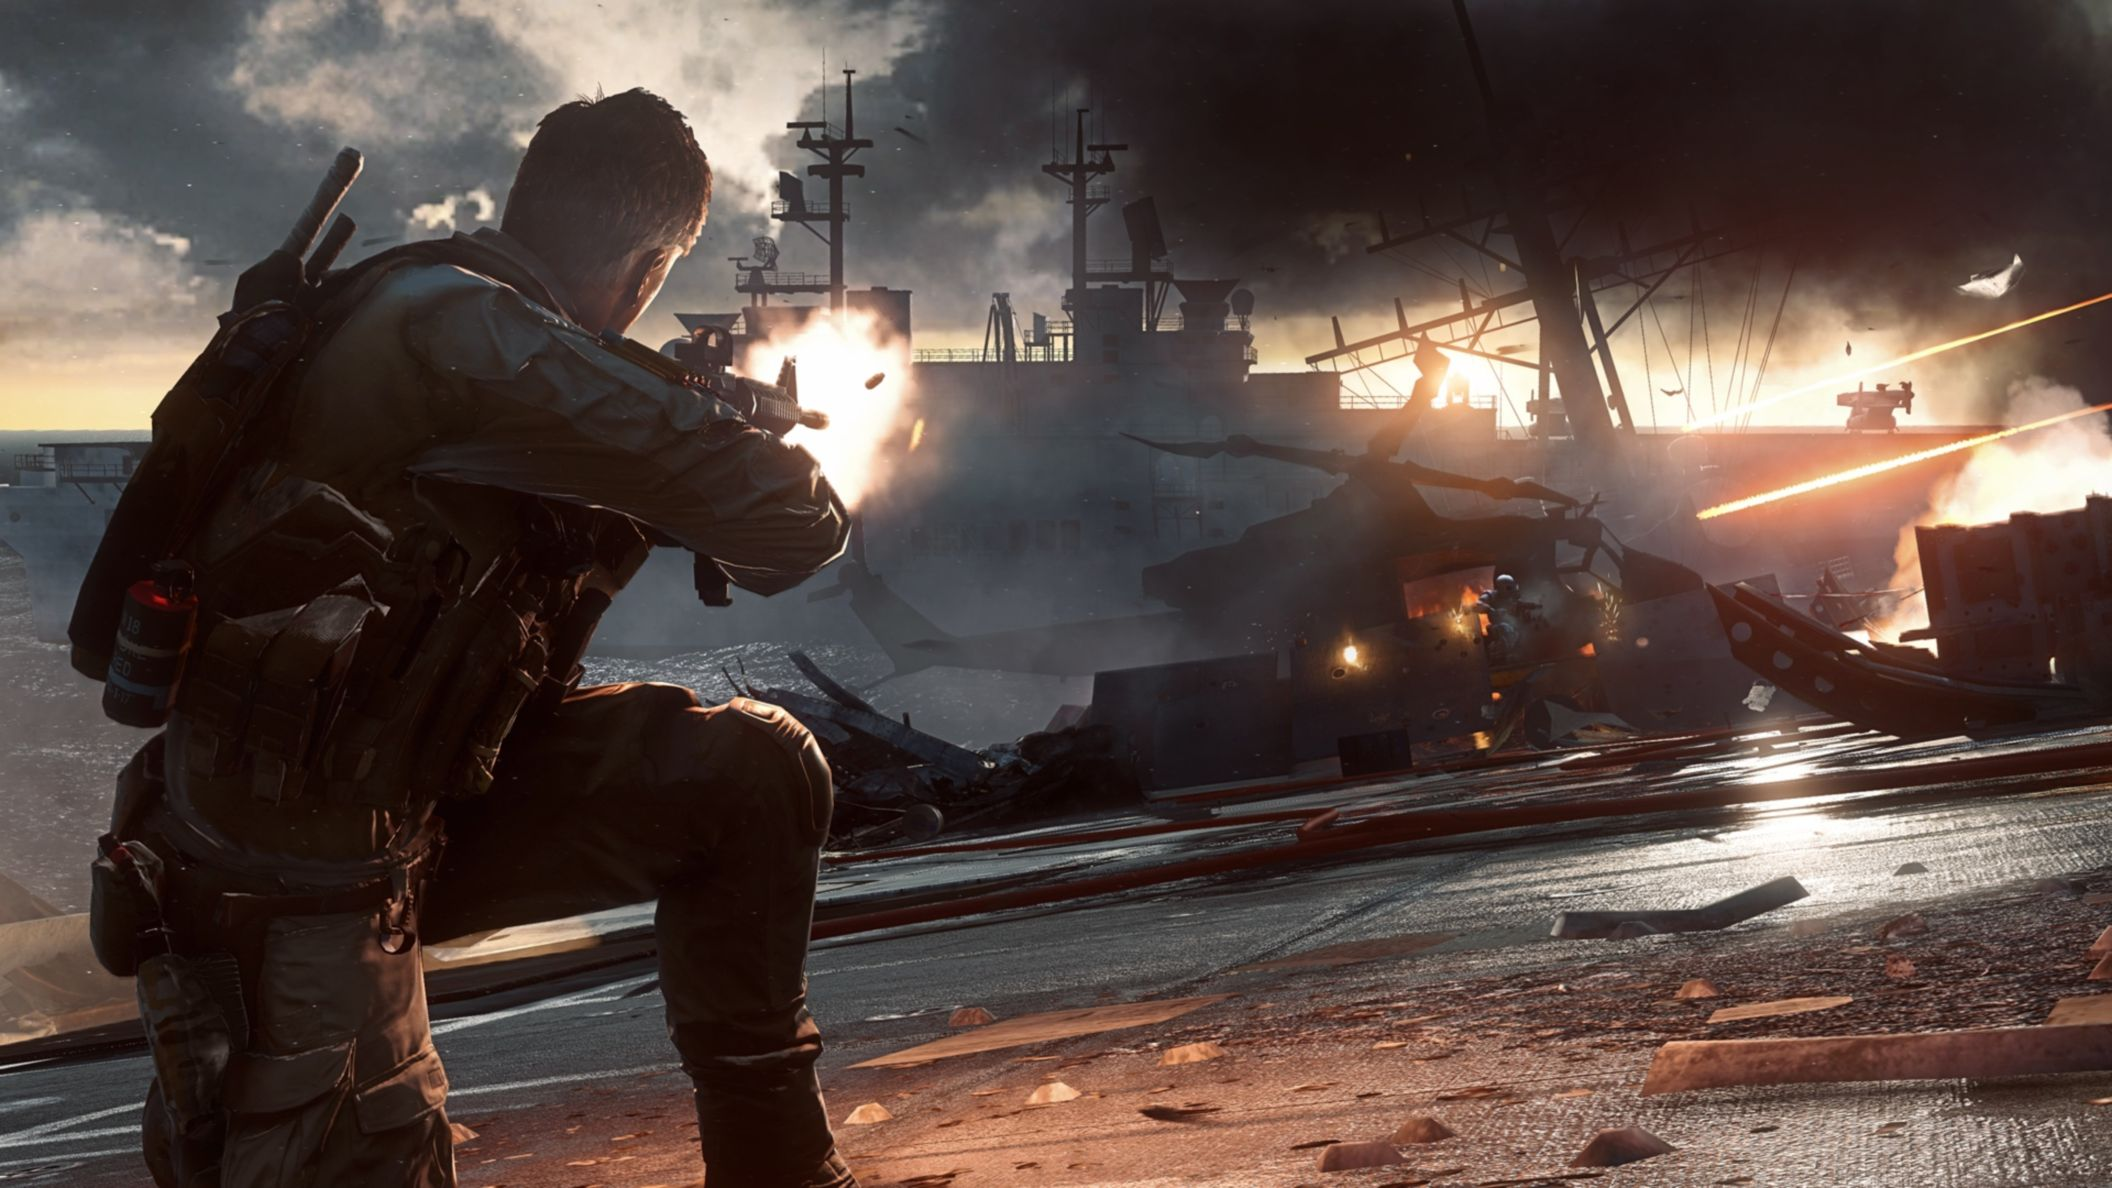 Download free HD Battlefield 4 Sniper Download Wallpaper, image